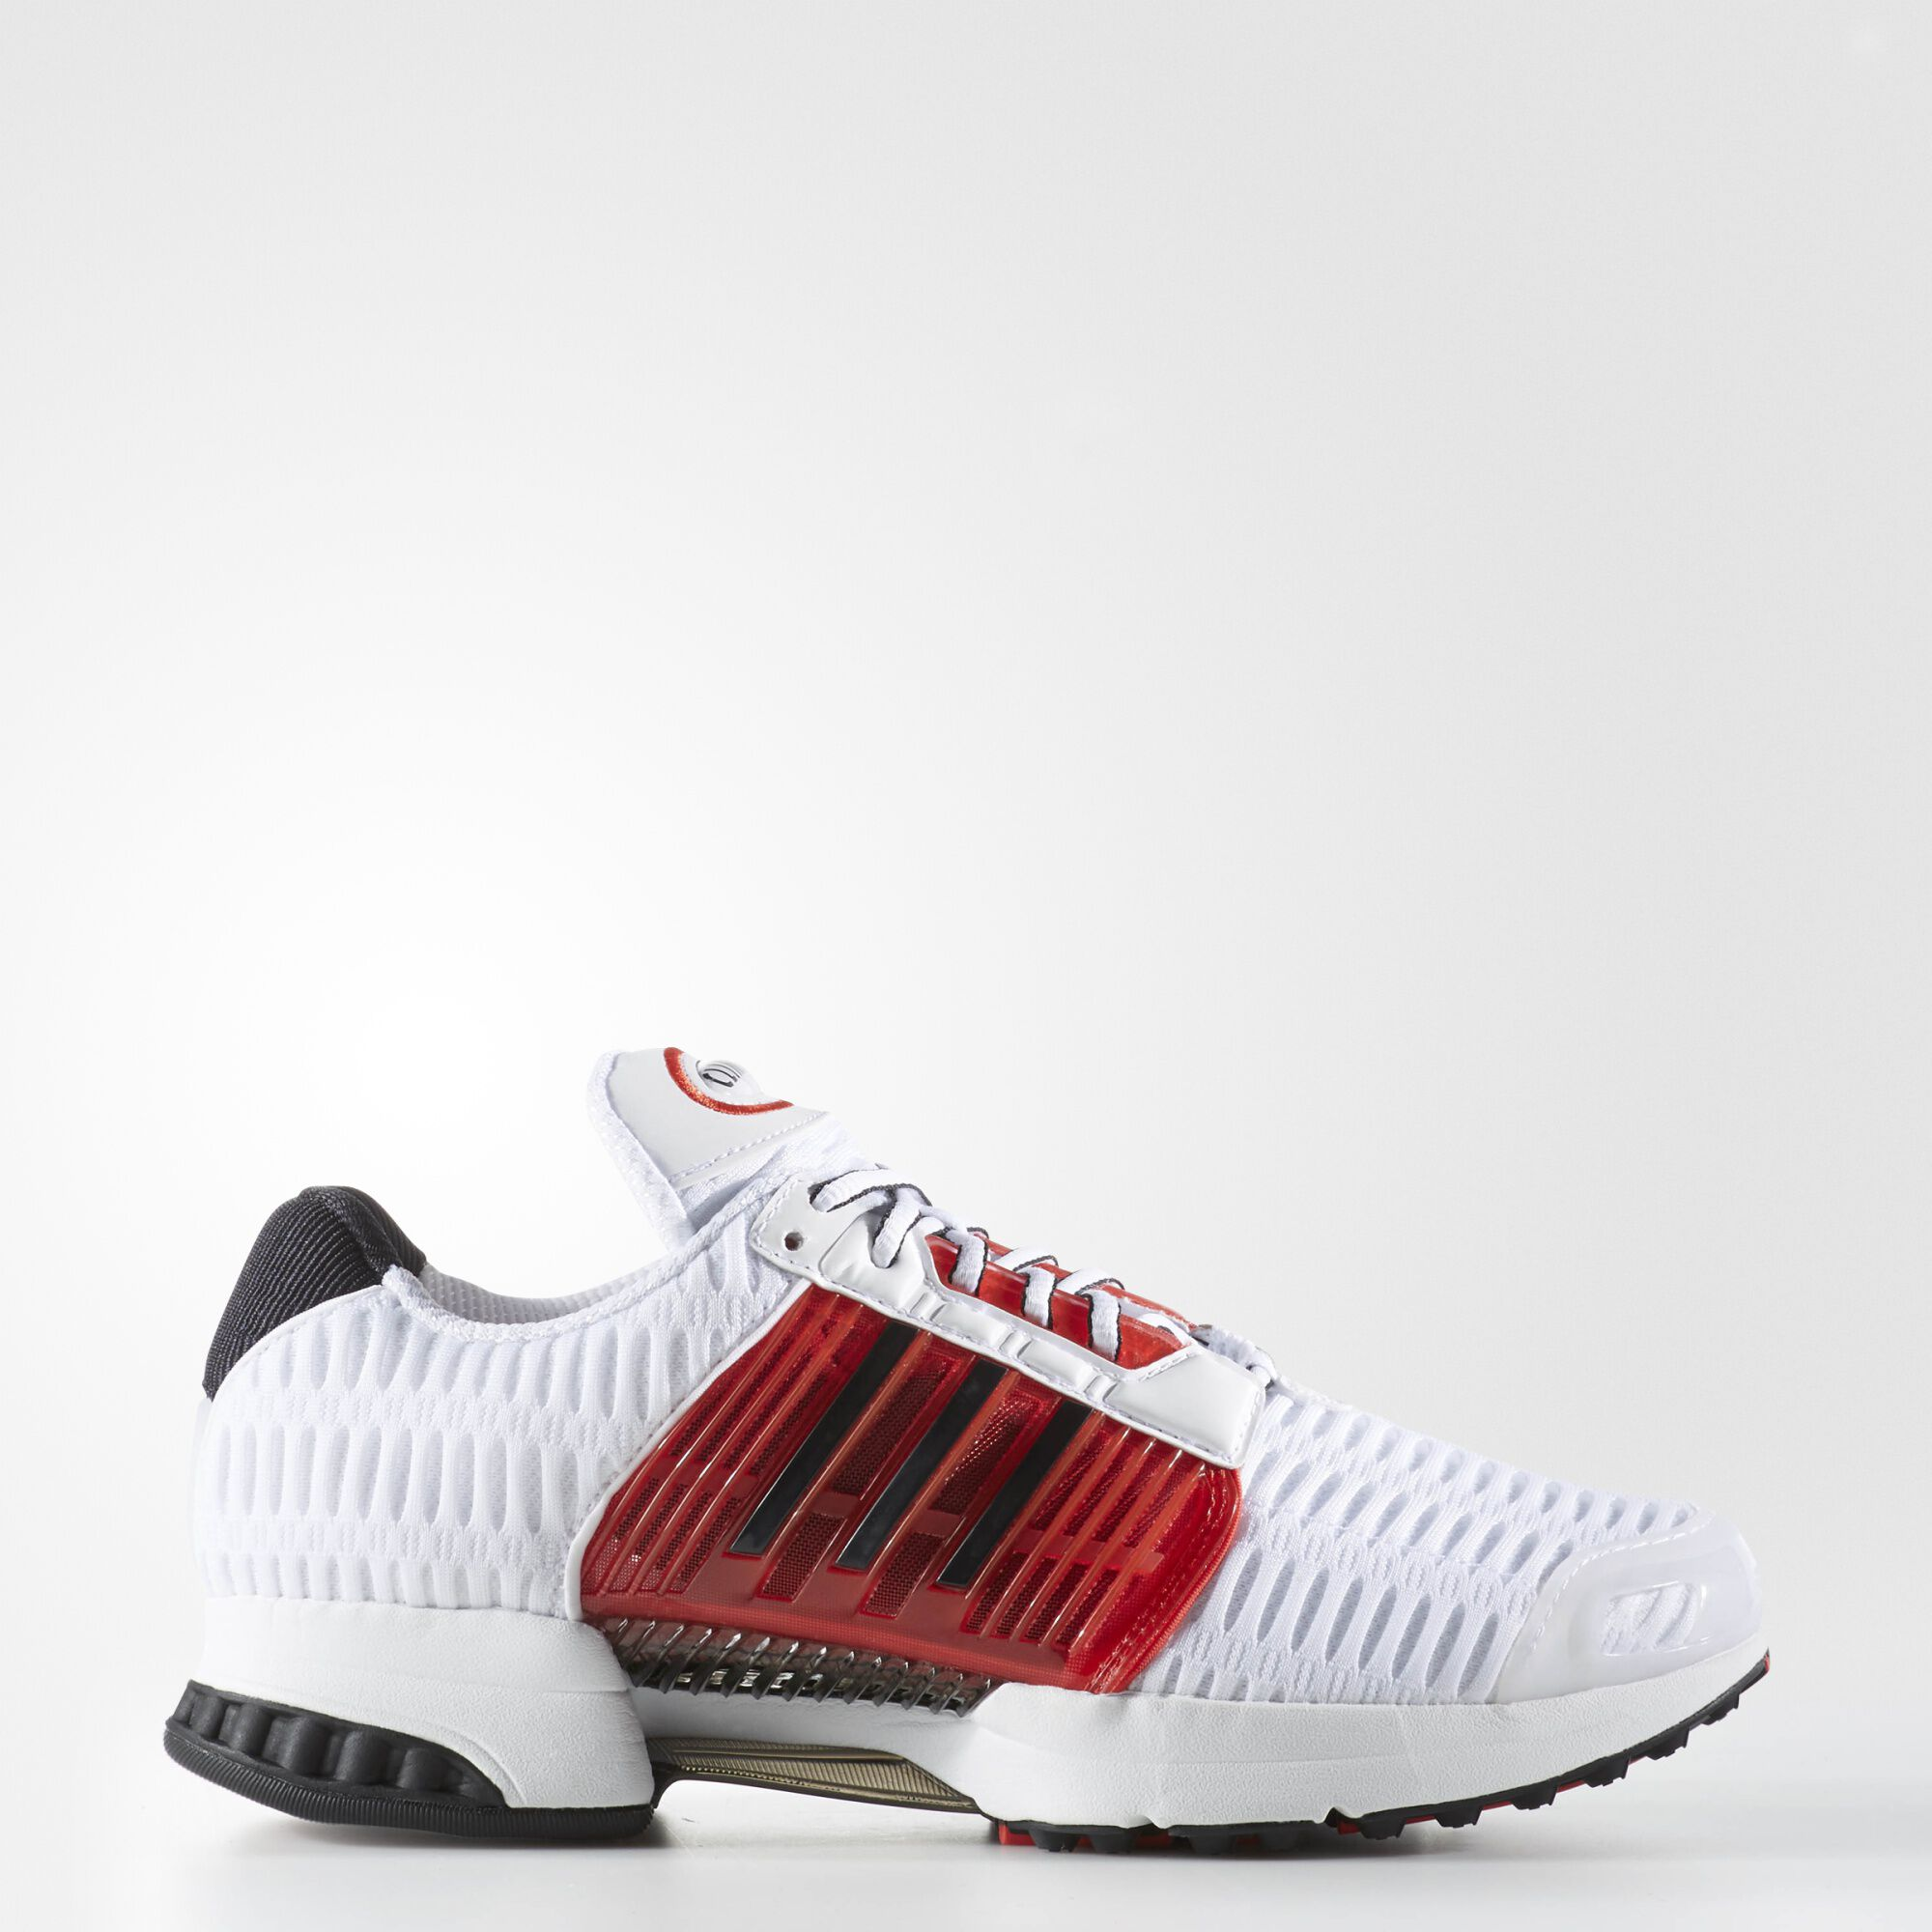 adidas climacool shoes price